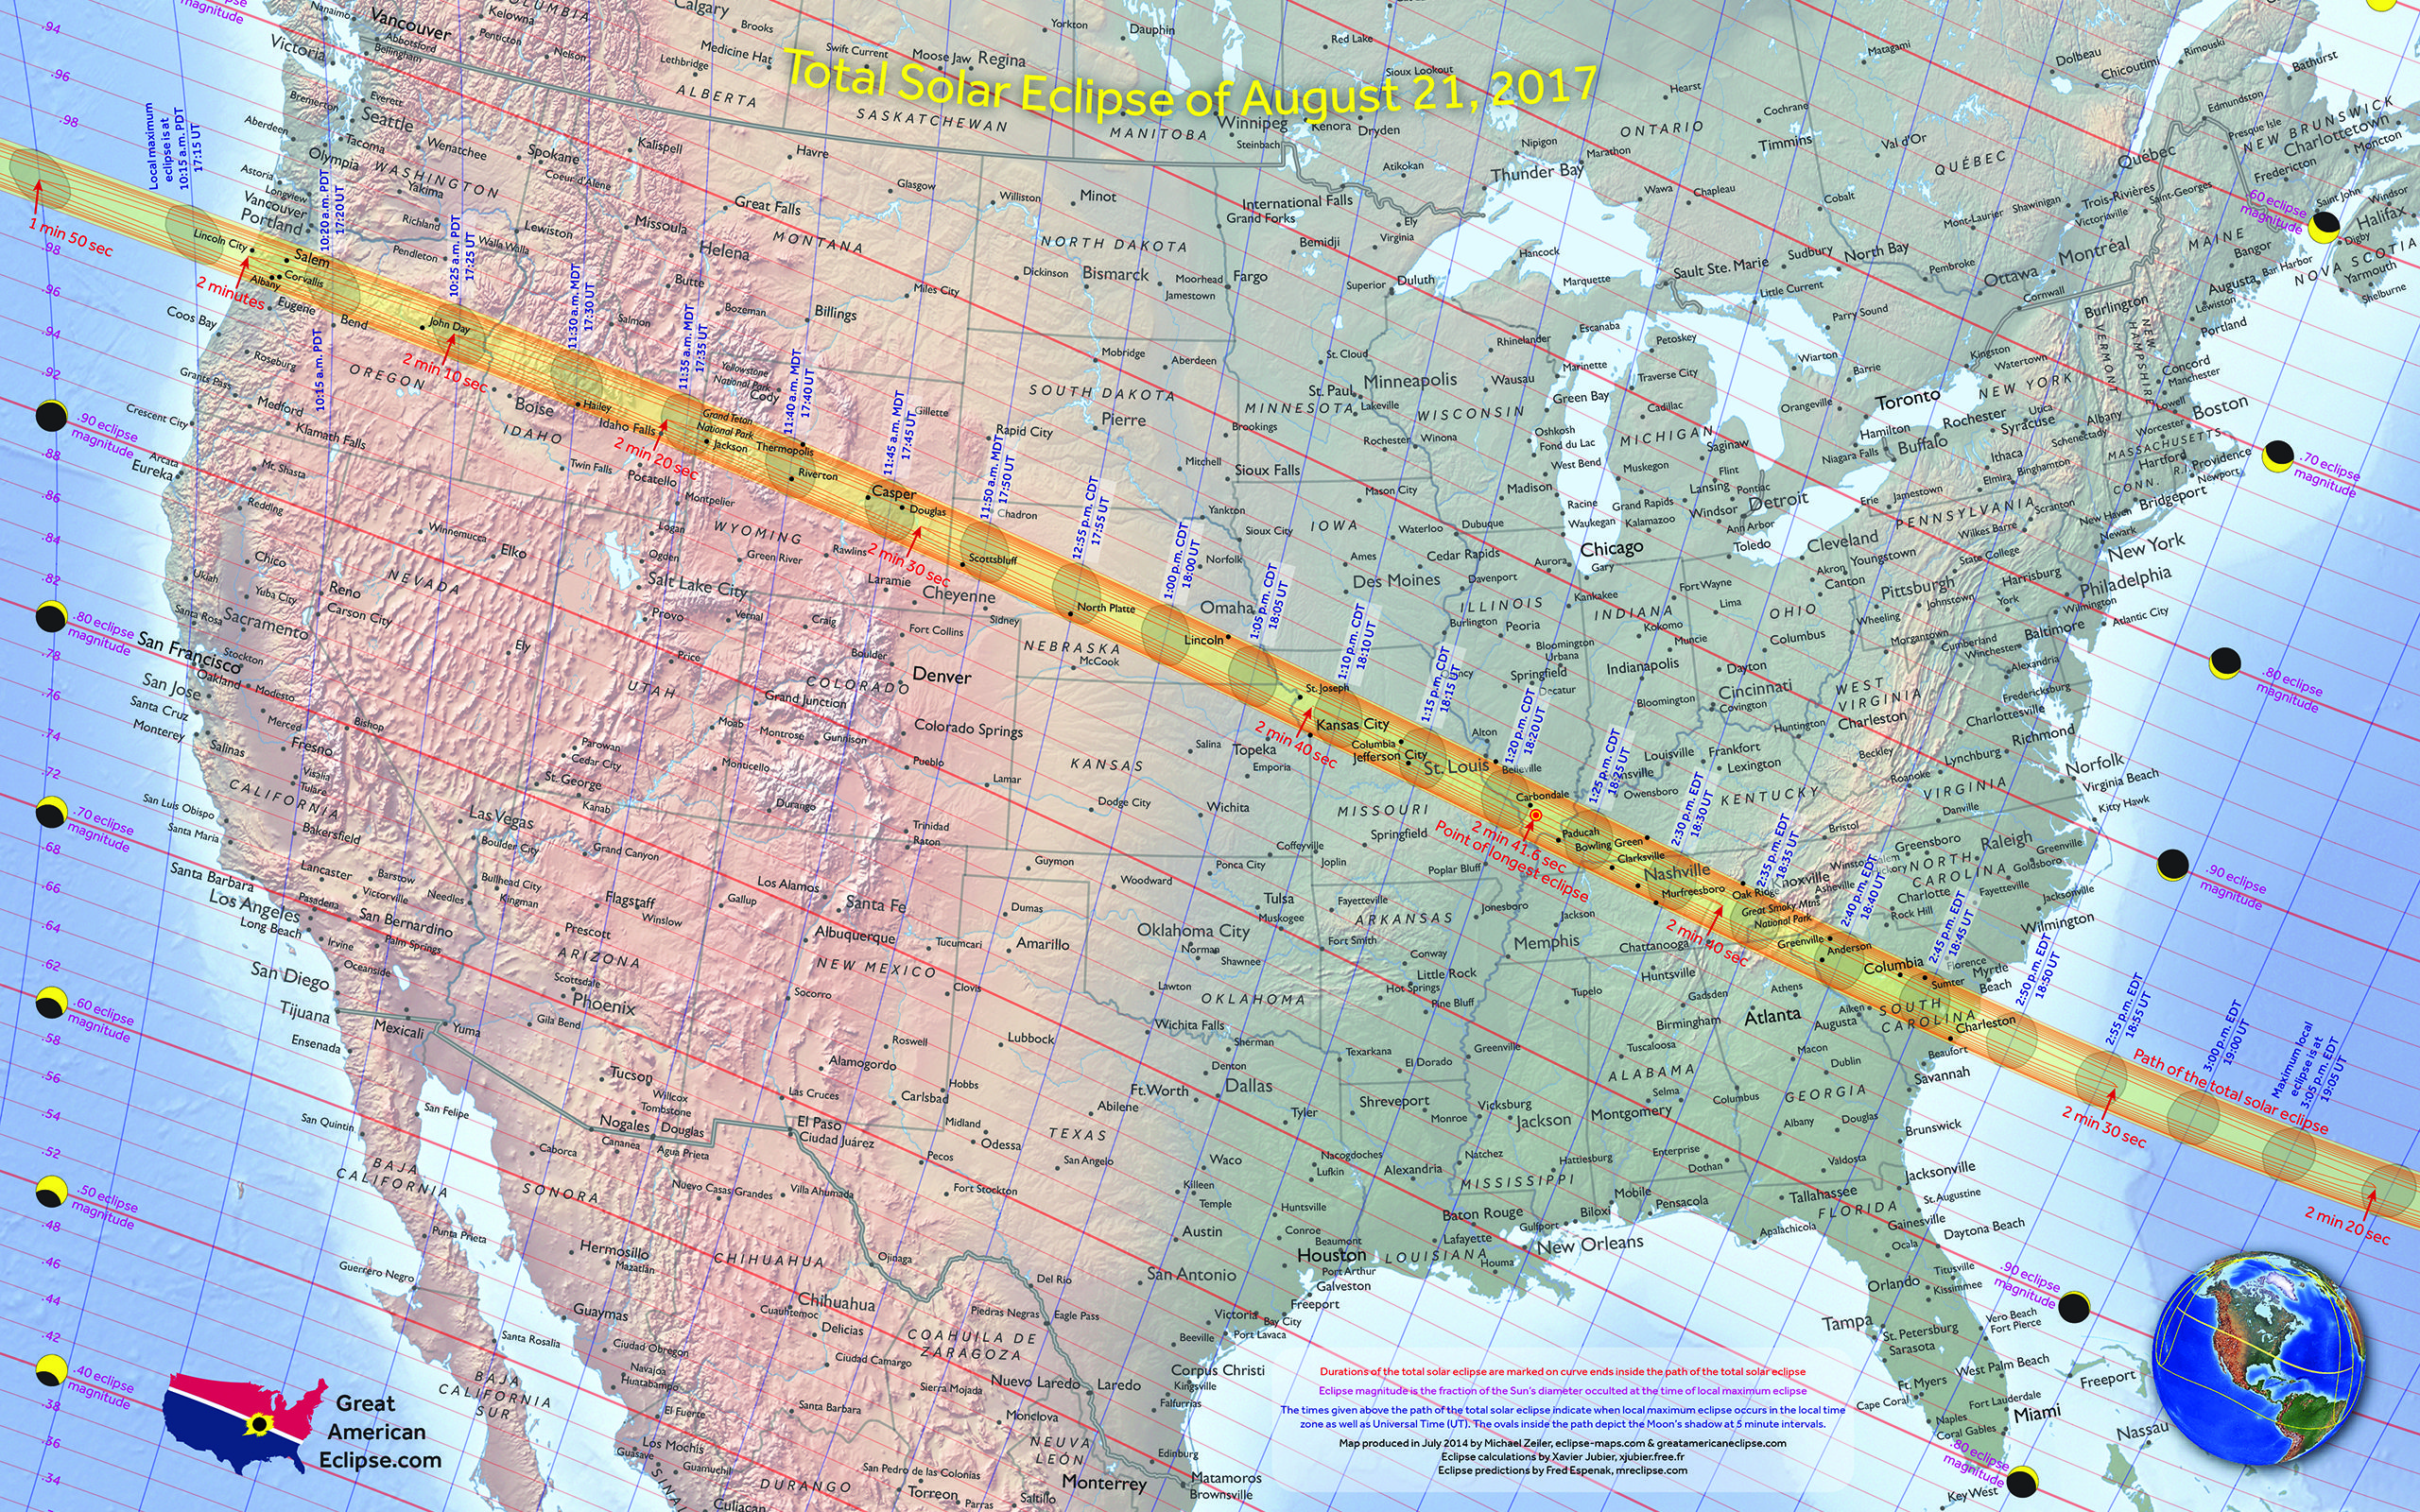 Map Of The Path Of The Total Solar Eclipse Over The USA On August - Us eclipse 2017 map